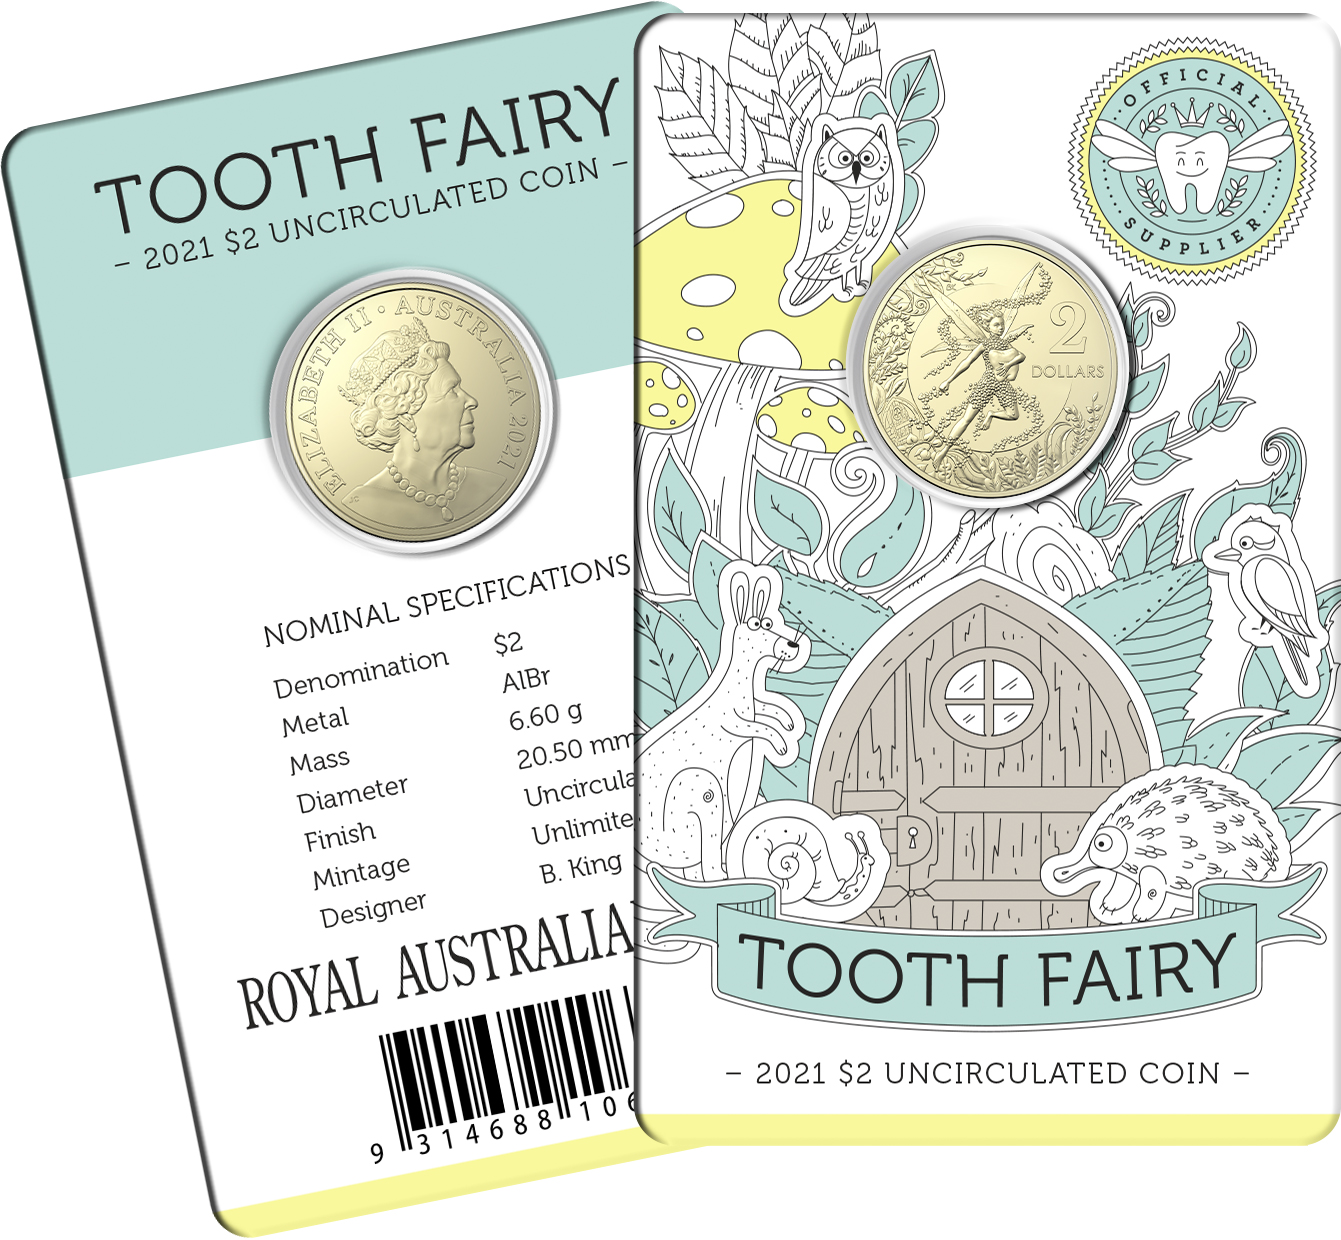 Thumbnail for 2021 $2 Tooth Fairy UNC Coin on Card